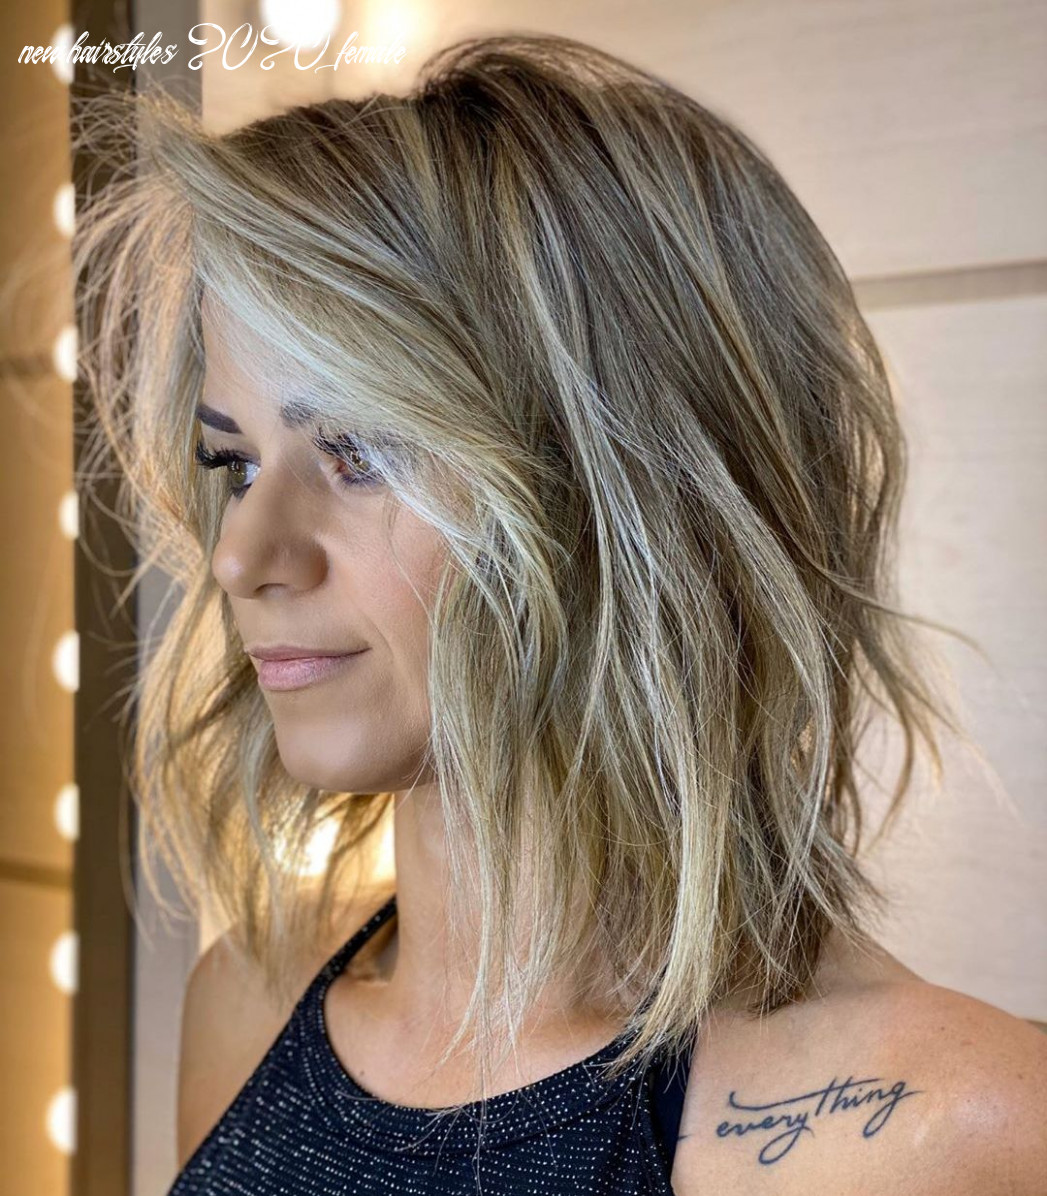 12 newest haircut ideas and haircut trends for 12 hair adviser new hairstyles 2020 female